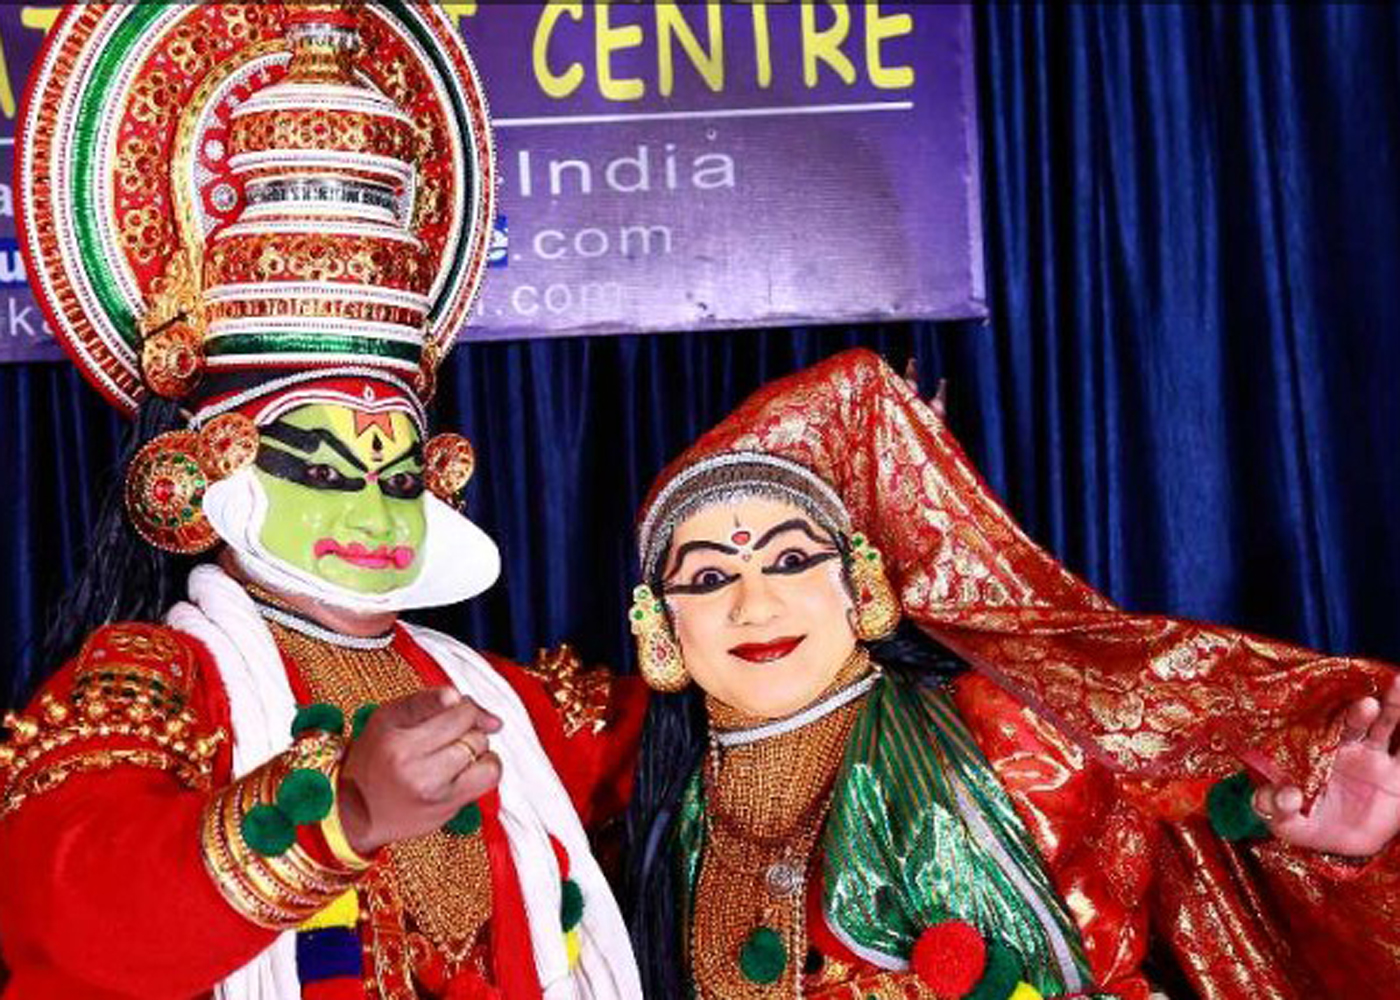 Kurangani.thekkady.Mudra Cultural CentreMudra Cultural Centre is famous for cultural events that specifically involve the traditional dance form, Kathakali and India's oldest form of martial arts, Kal-RENGHA HOLIDAYS